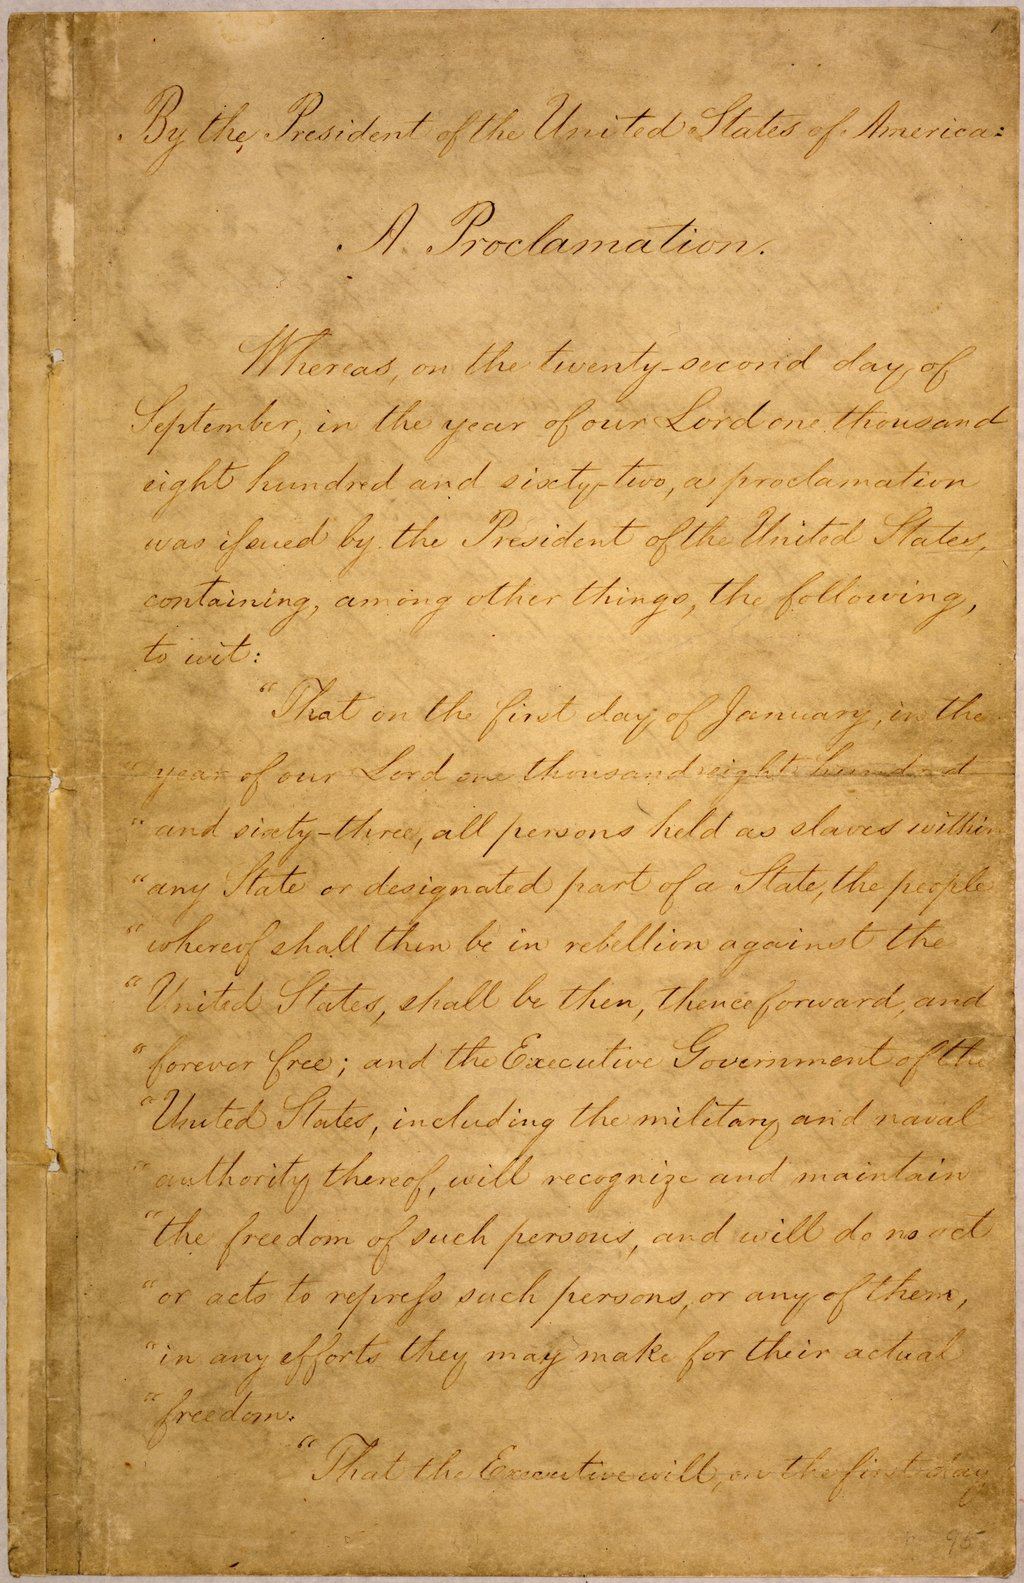 The five page original document, held in the National Archives Building. Until 1936 it had been bound with other proclamations in a large volume held by the Department of State.